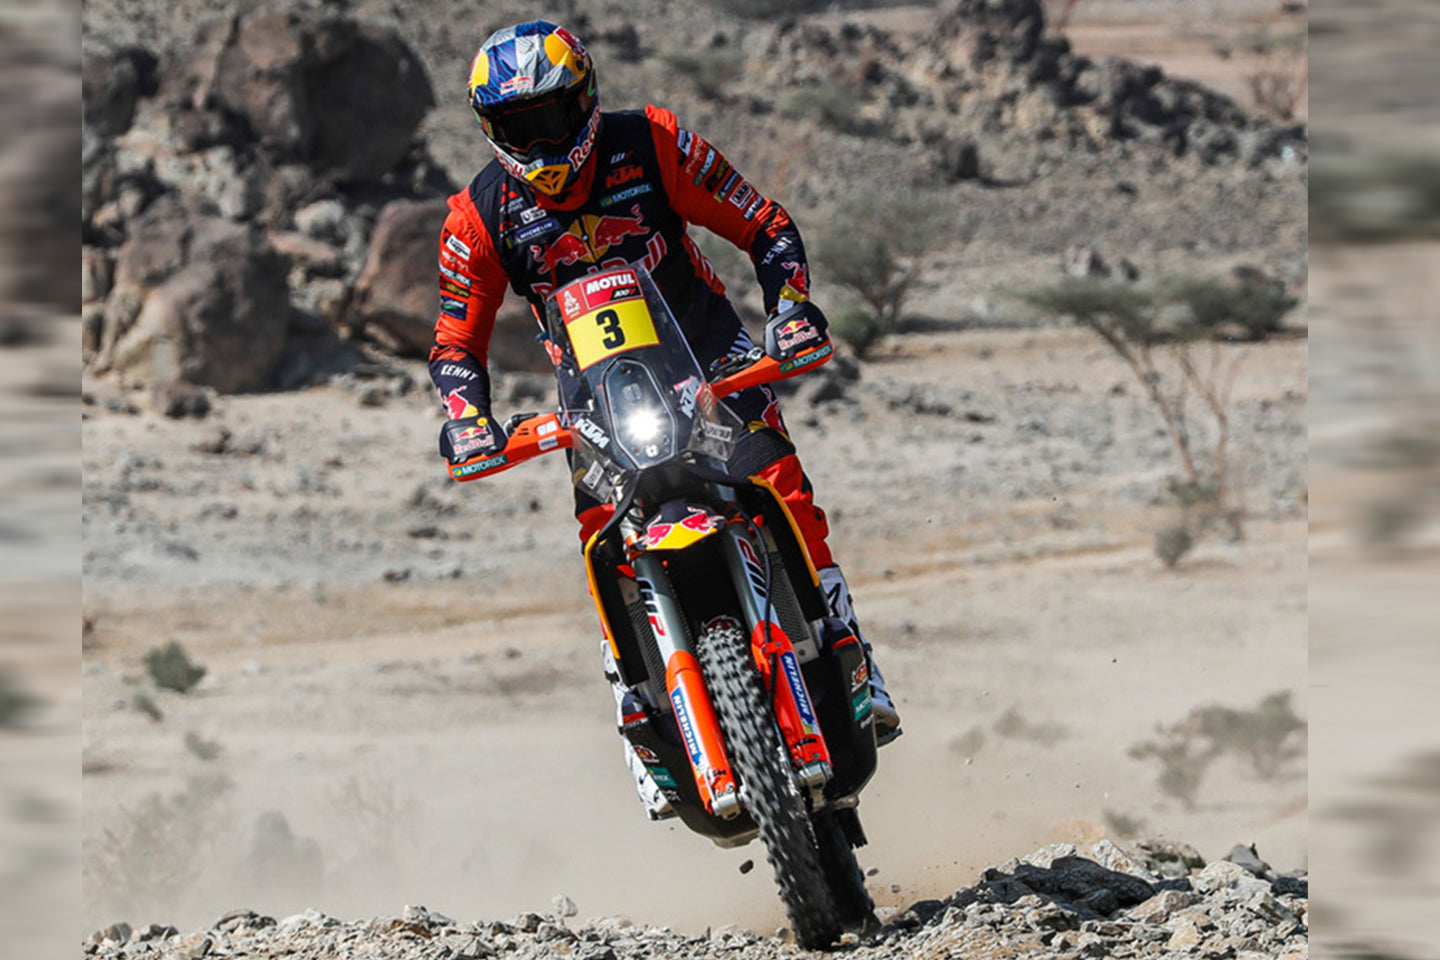 TOBY PRICE STORMS TO STAGE ONE VICTORY AT DAKAR 2021